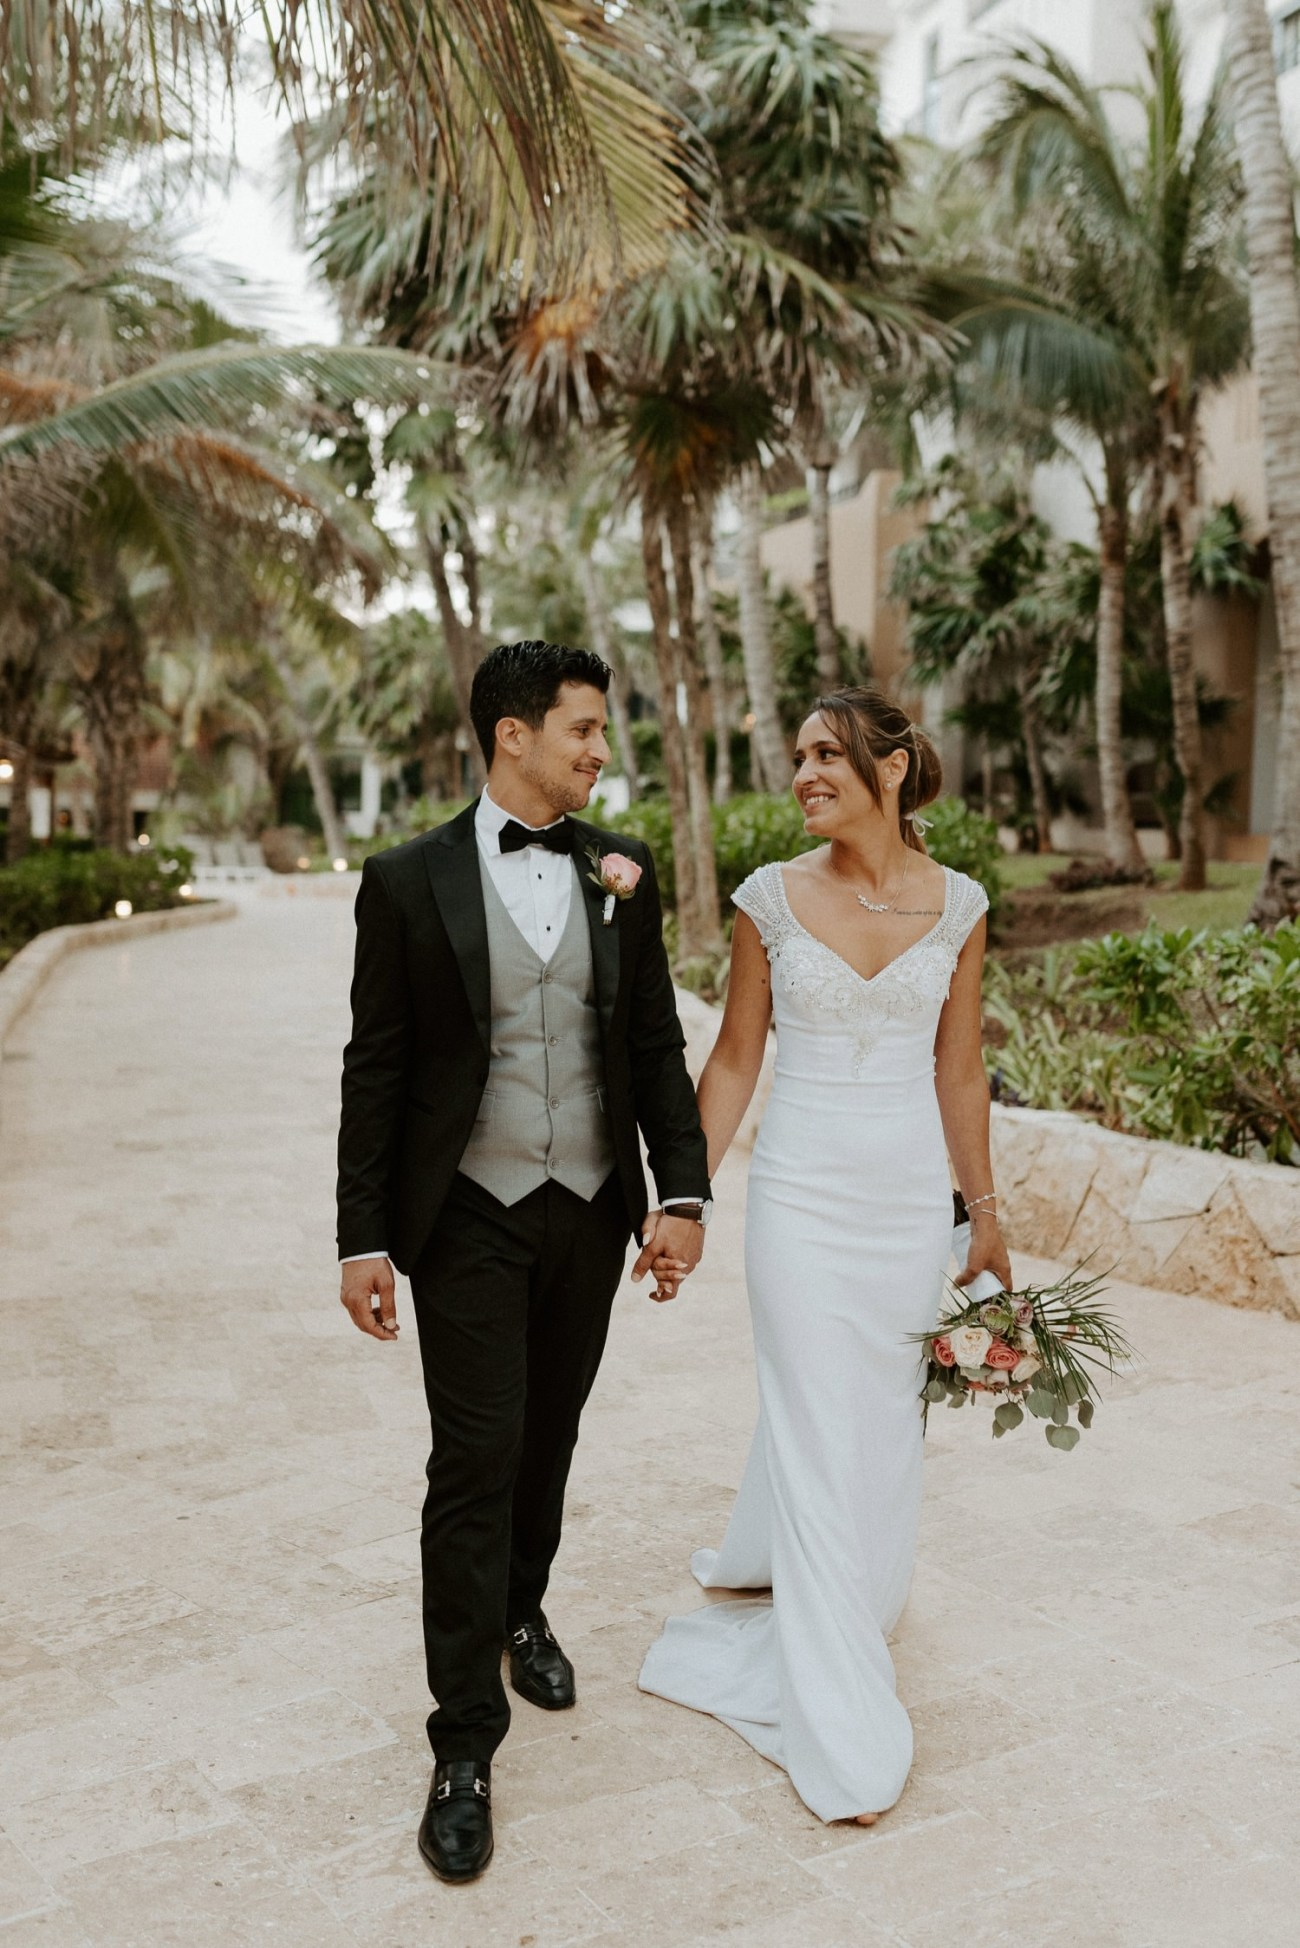 Cancun Destination Wedding Mexico Tulum Wedding Photographer Anais Possamai Photography 056